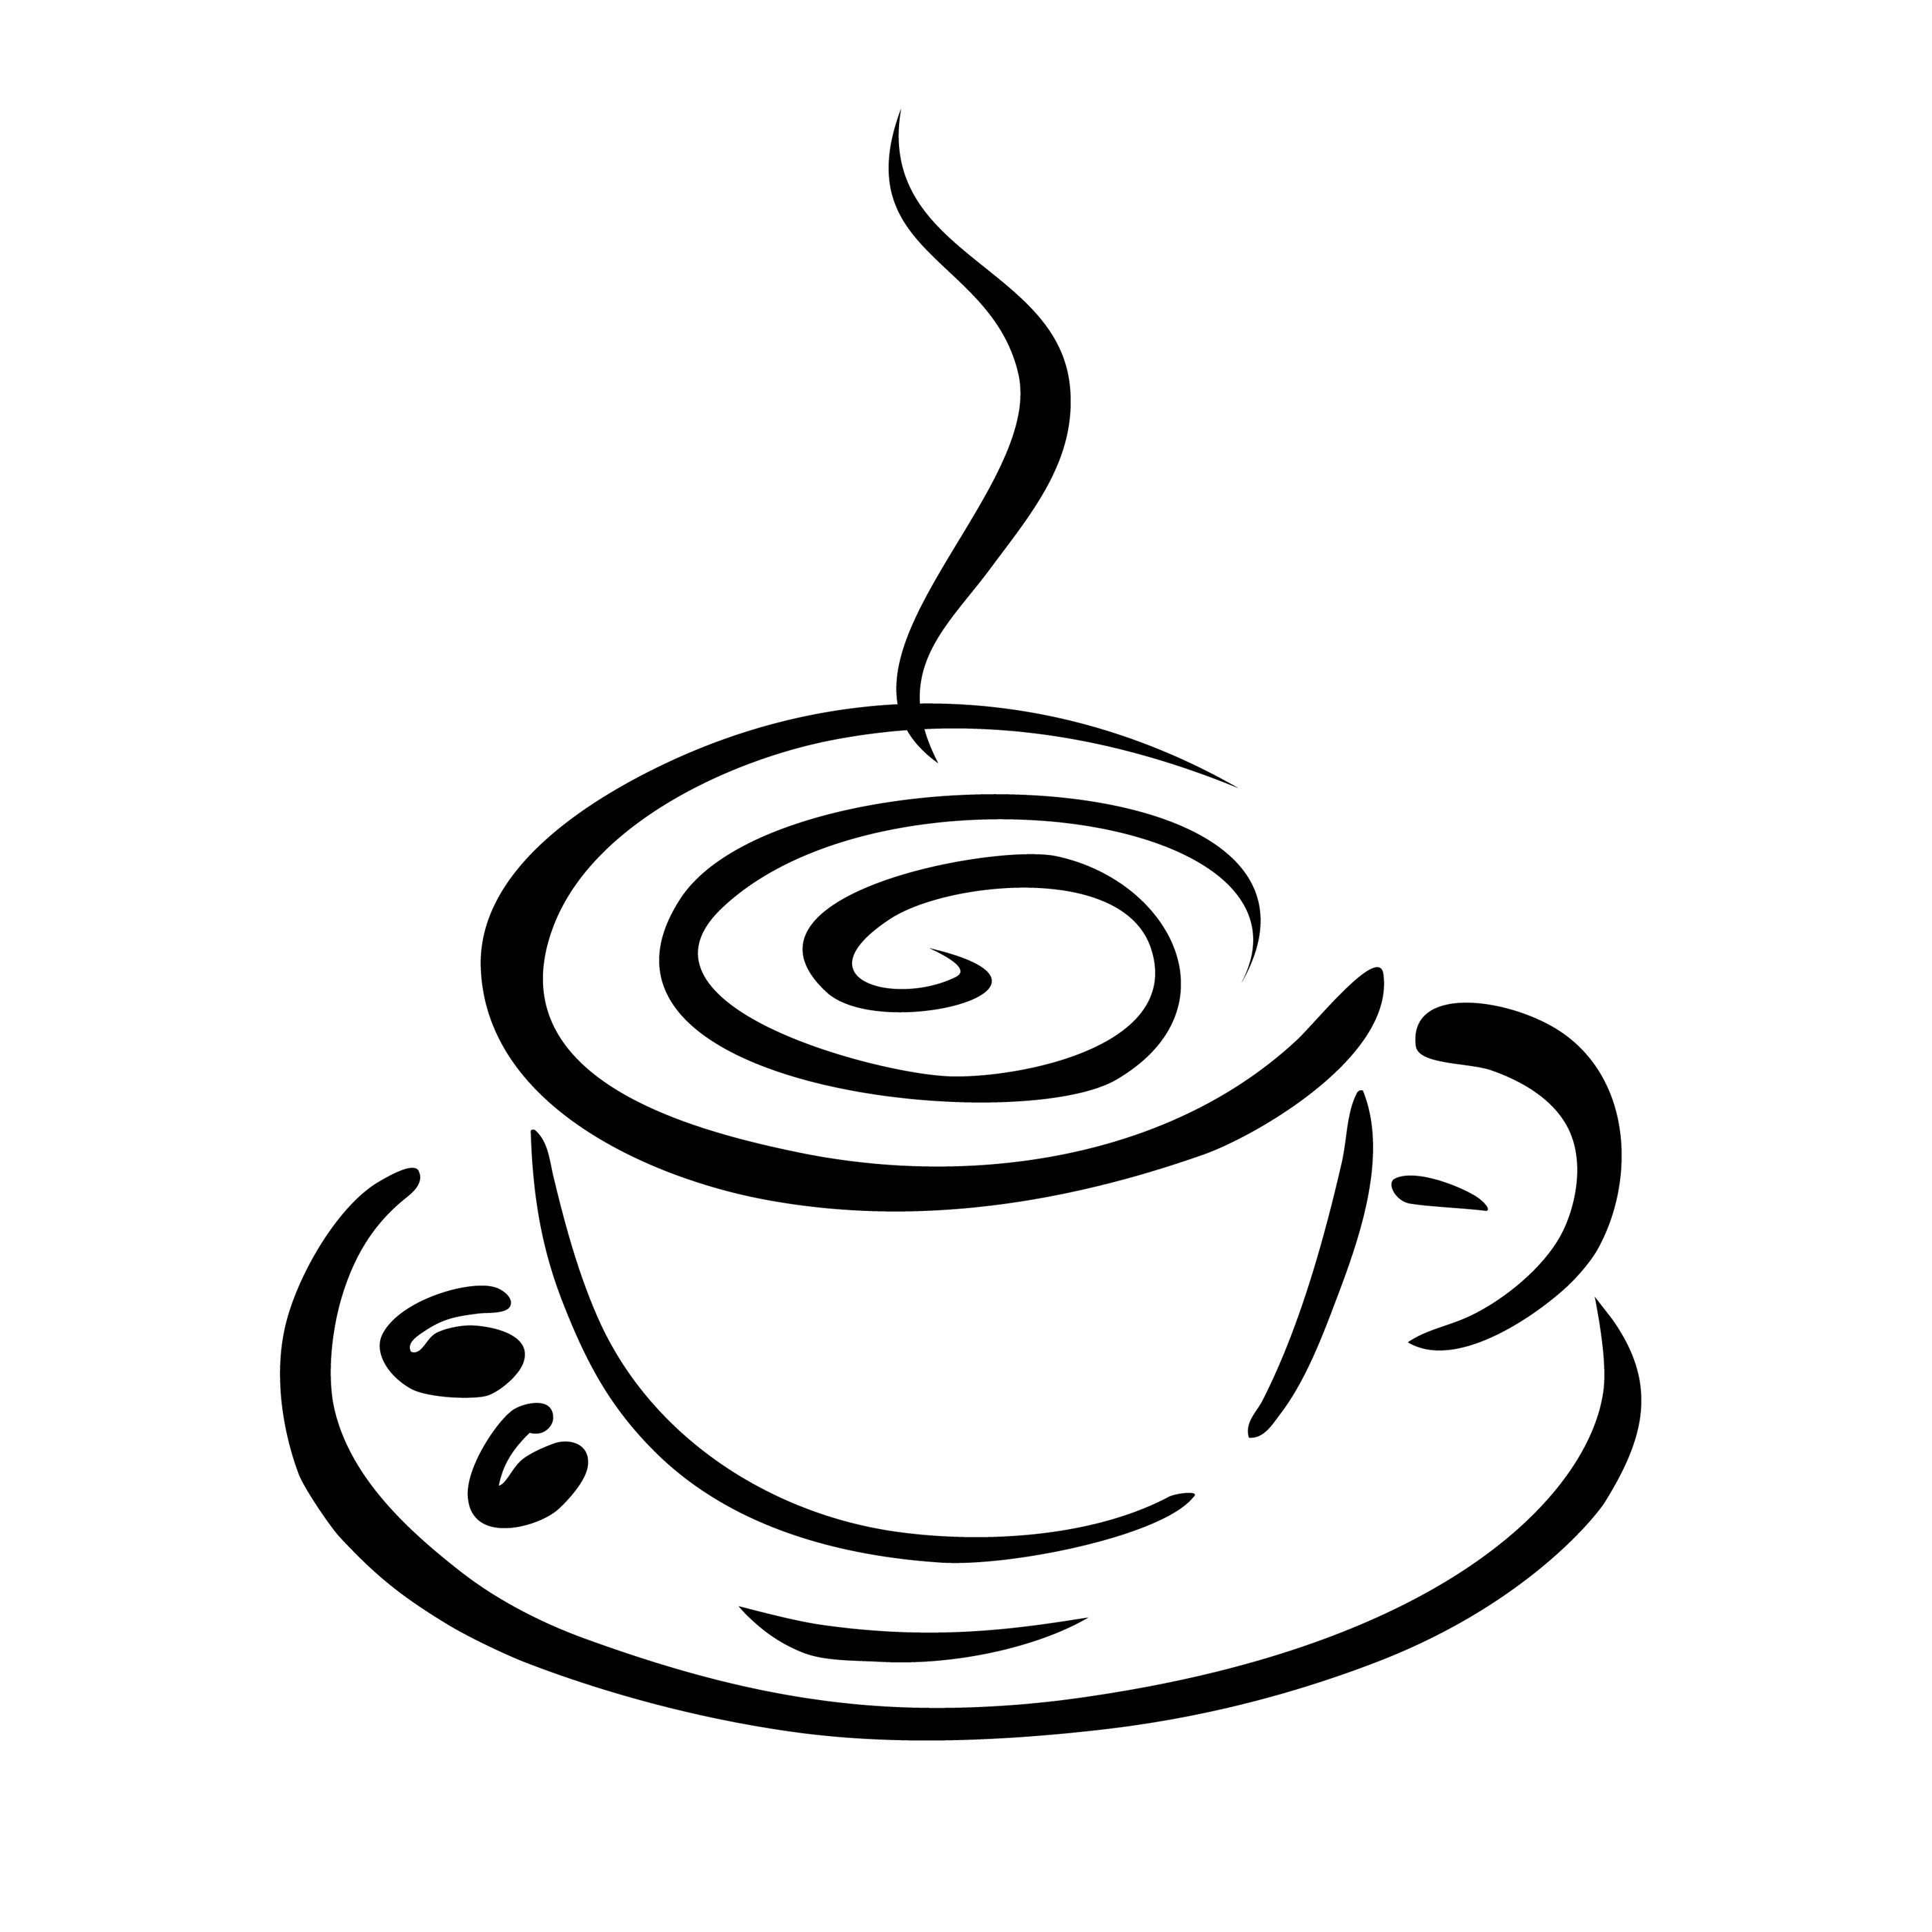 medium resolution of coffee cup black and white clipart clipart kid